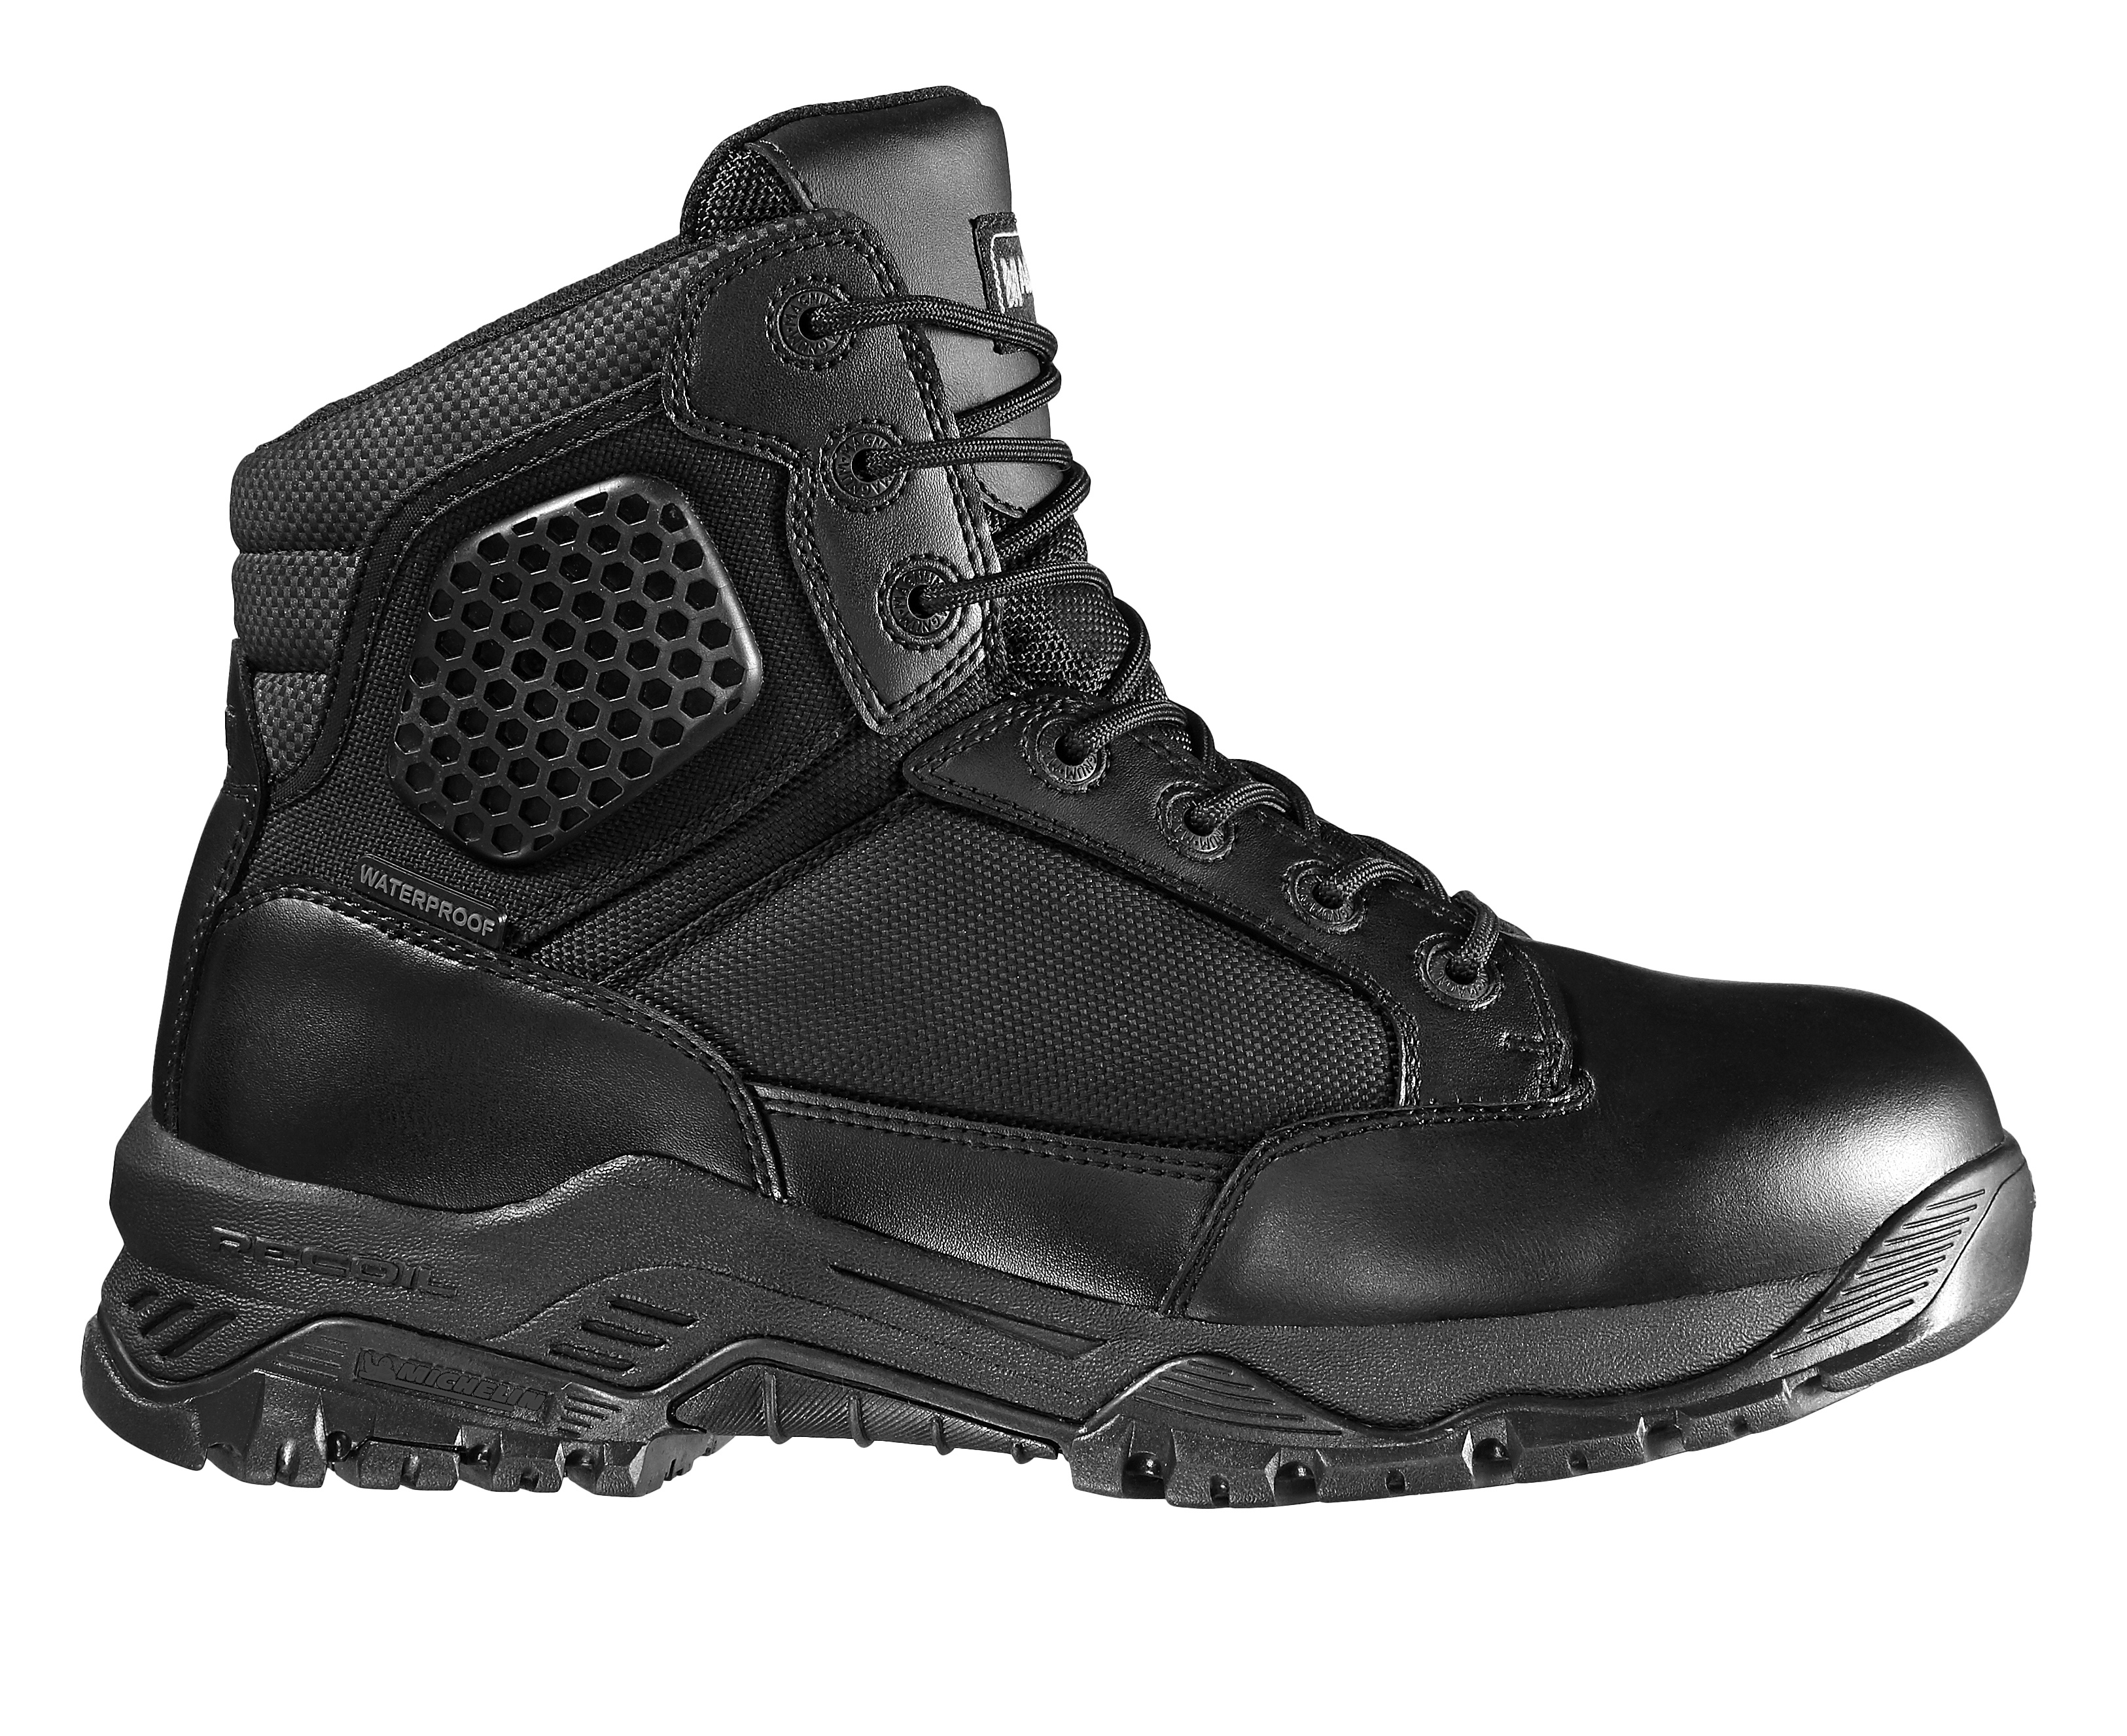 Magnum Usa Introduces Strike Force And Opus Duty Boots